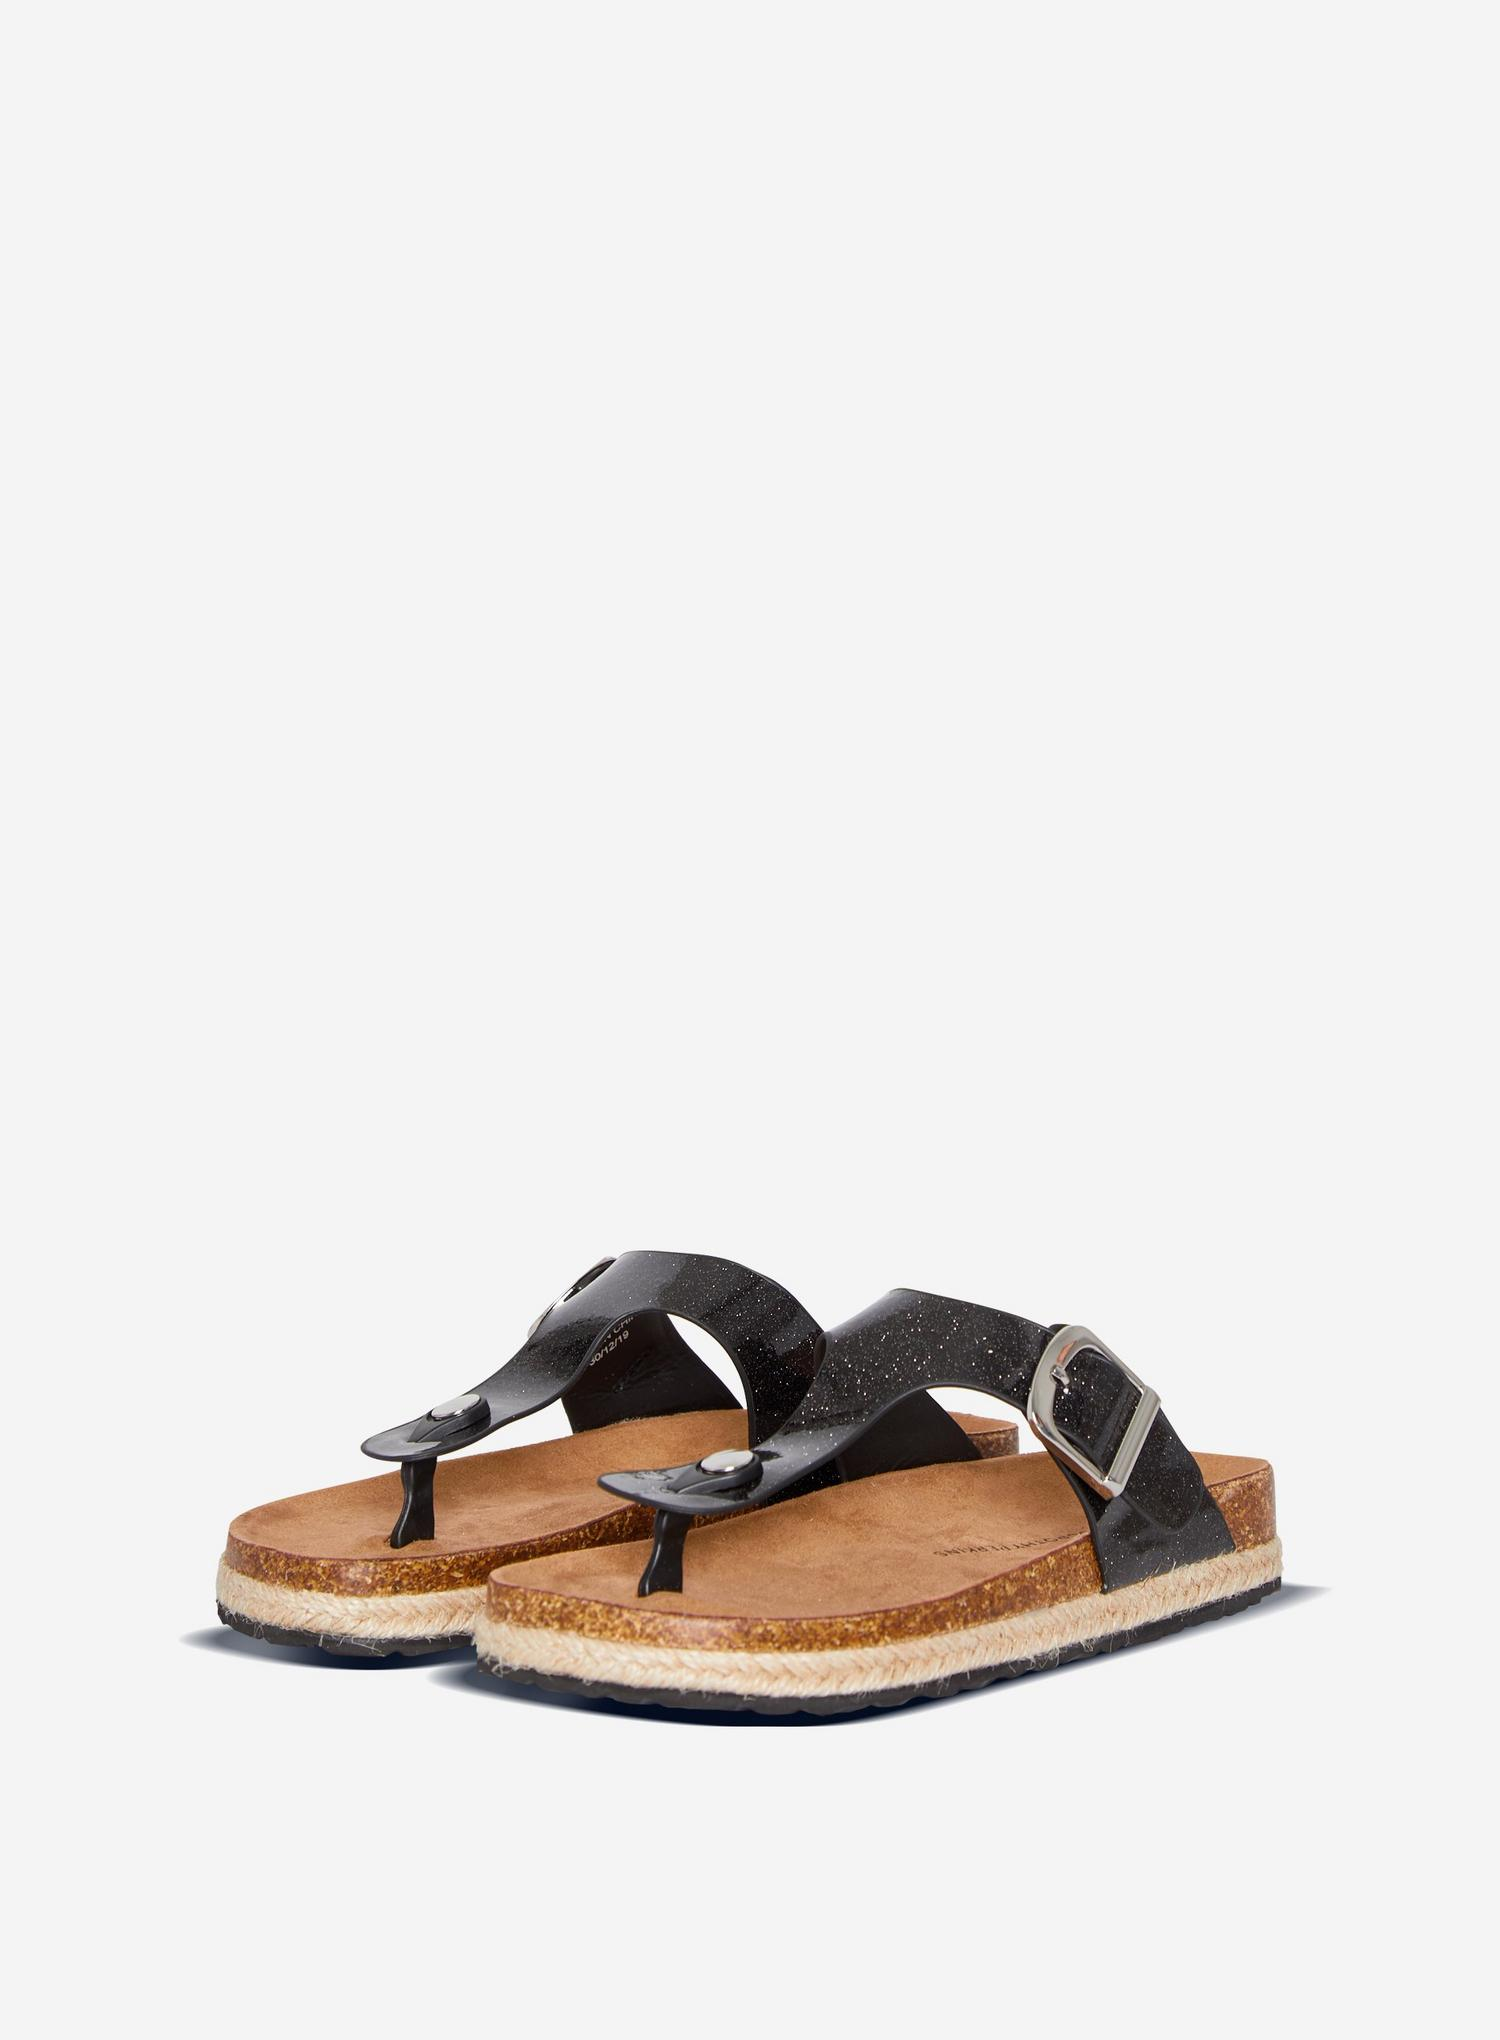 105 Black Fleetwood Toepost Sandals image number 1